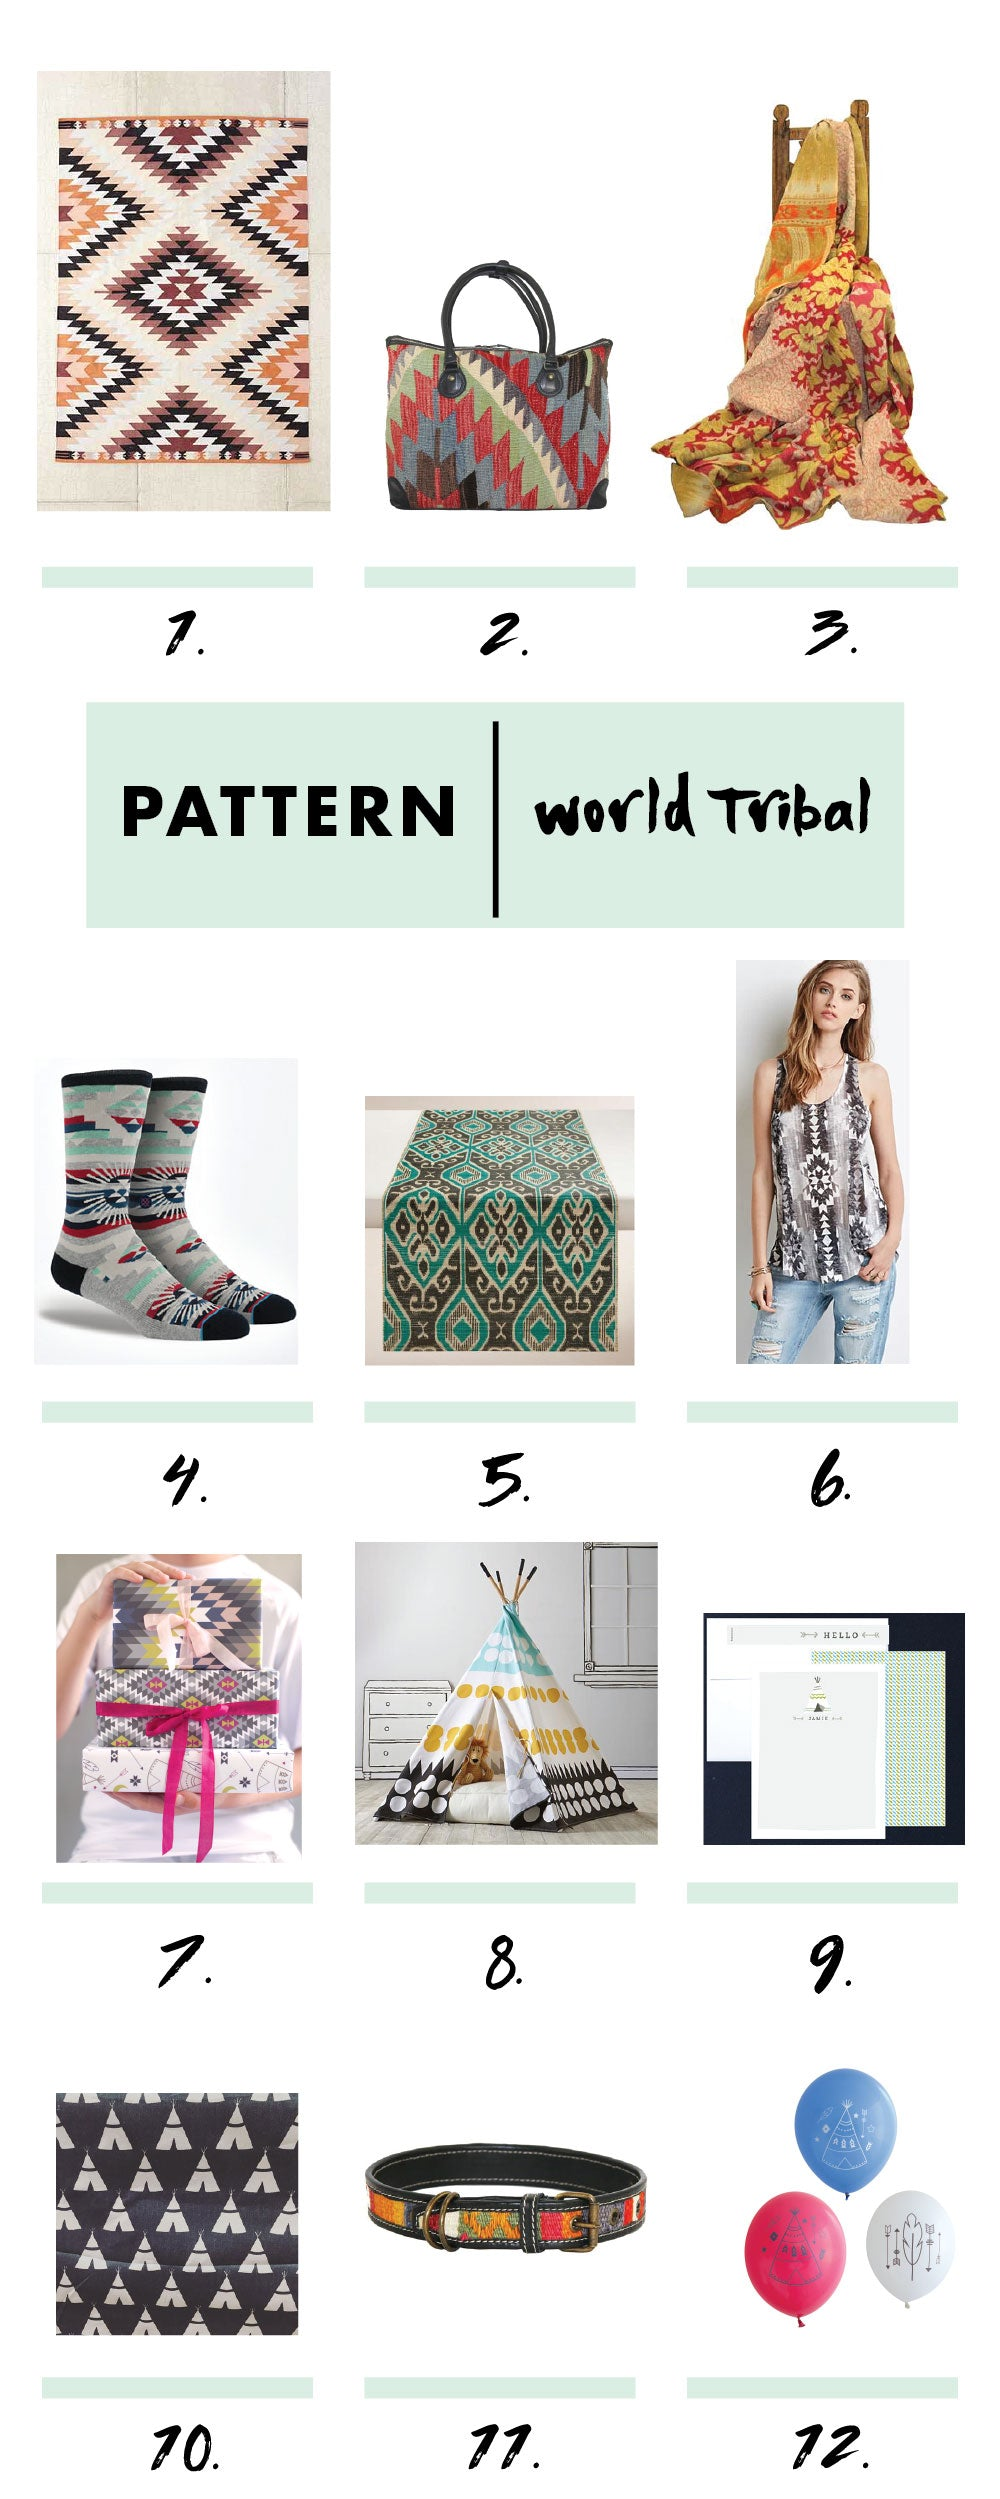 world tribal patterns roundup by erika firm